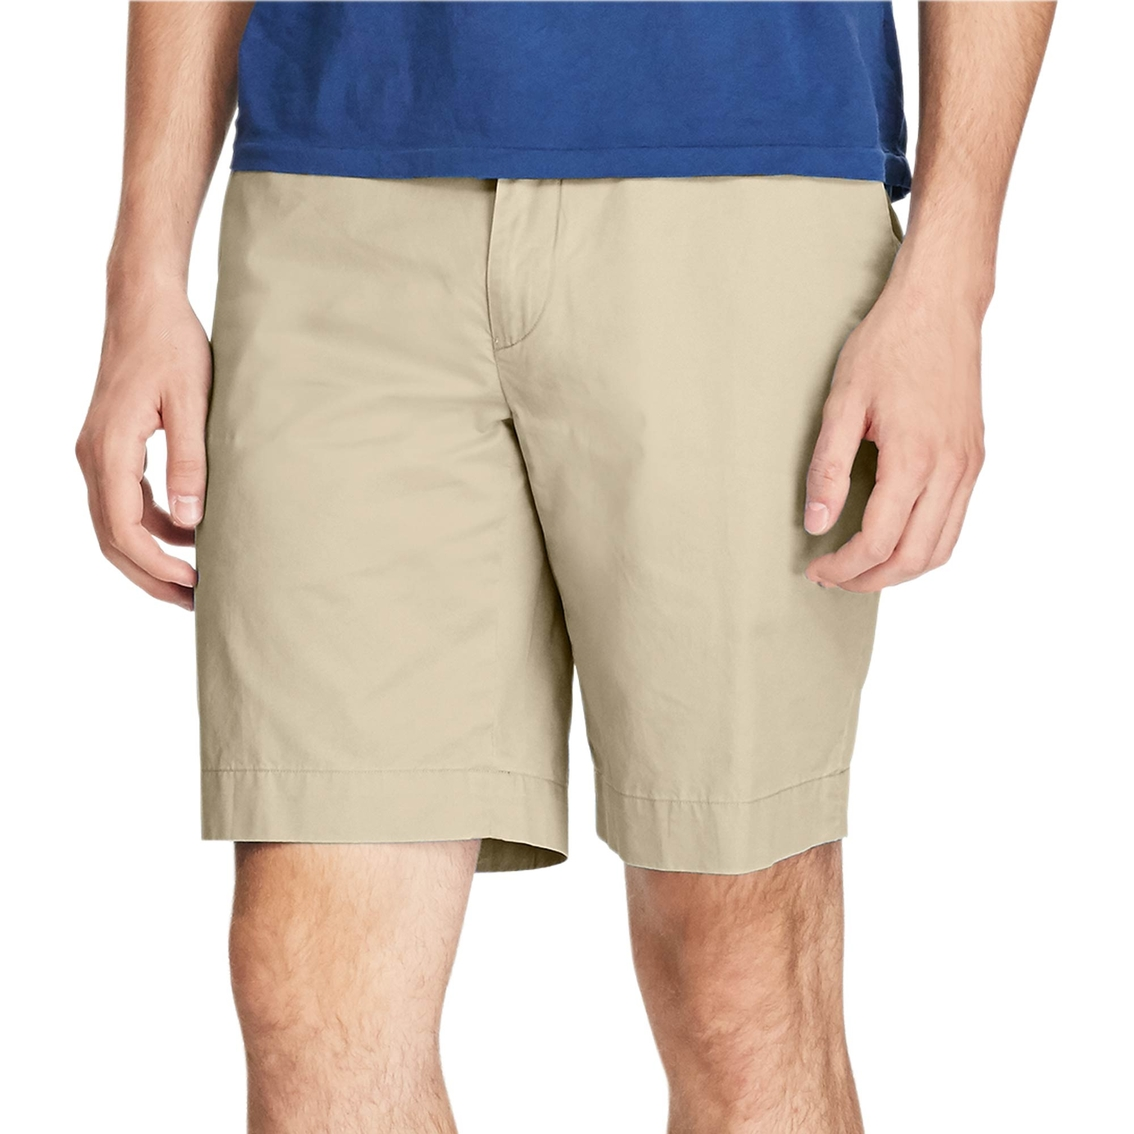 ee5198015 Polo Ralph Lauren Stretch Classic Fit Shorts | Polo Ralph Lauren ...